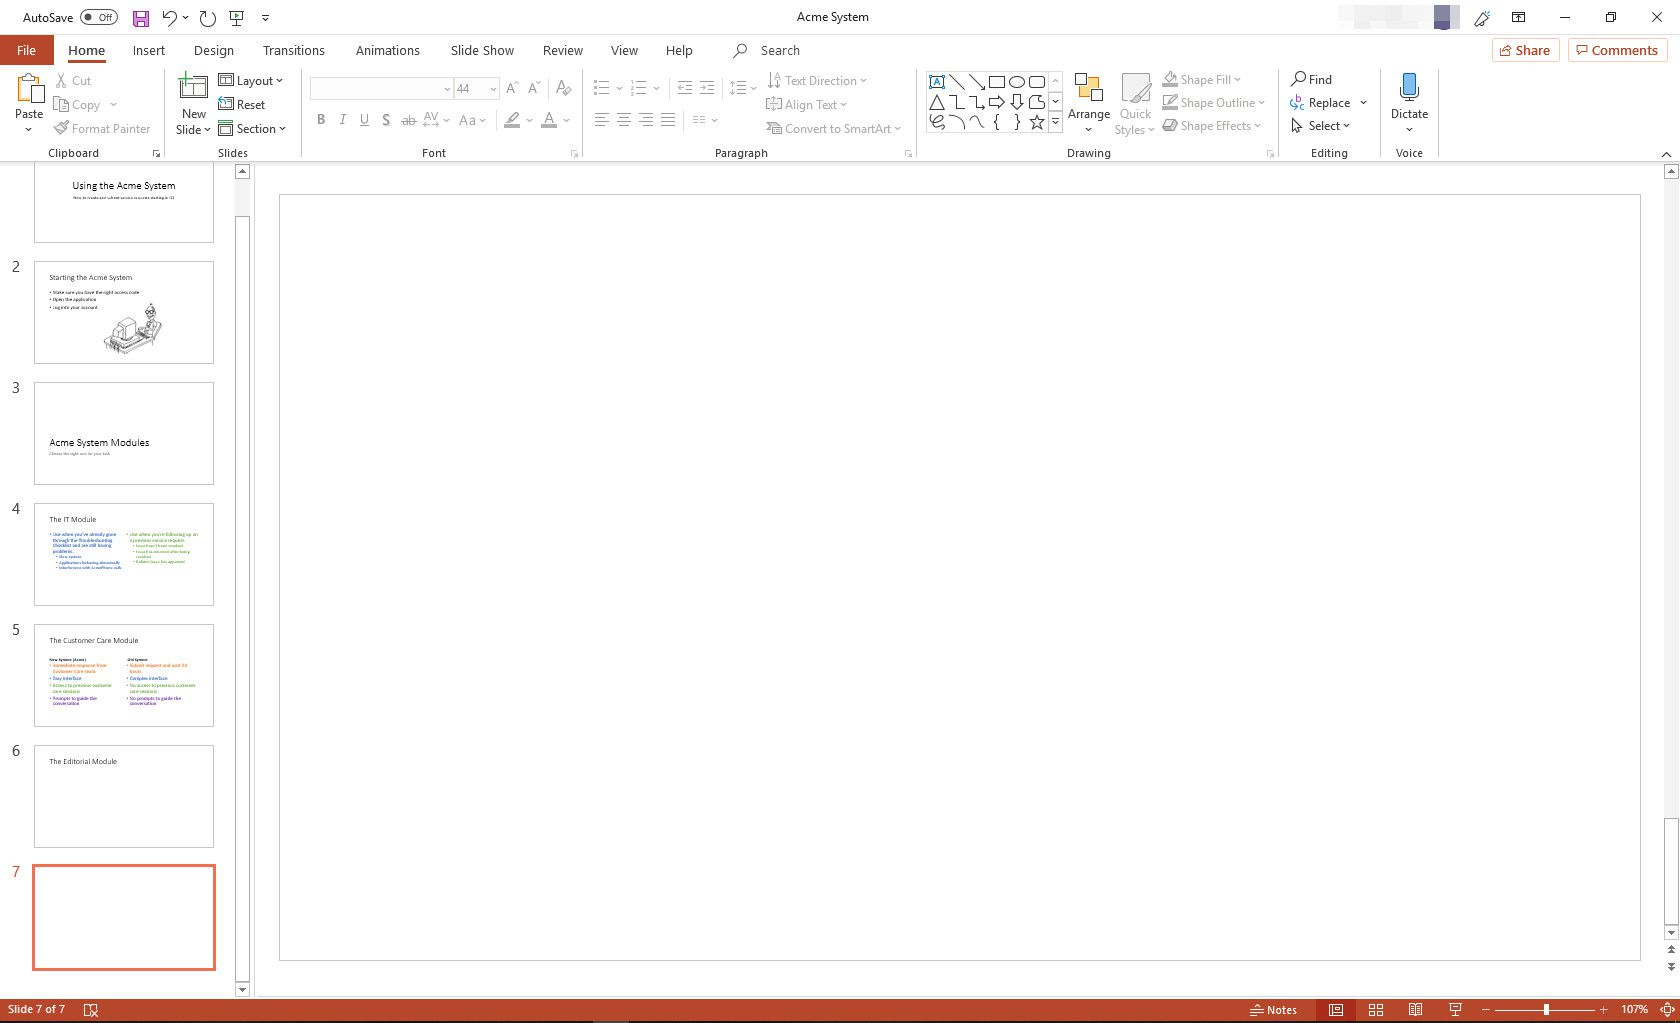 MS PowerPoint with Blank slide layout displayed